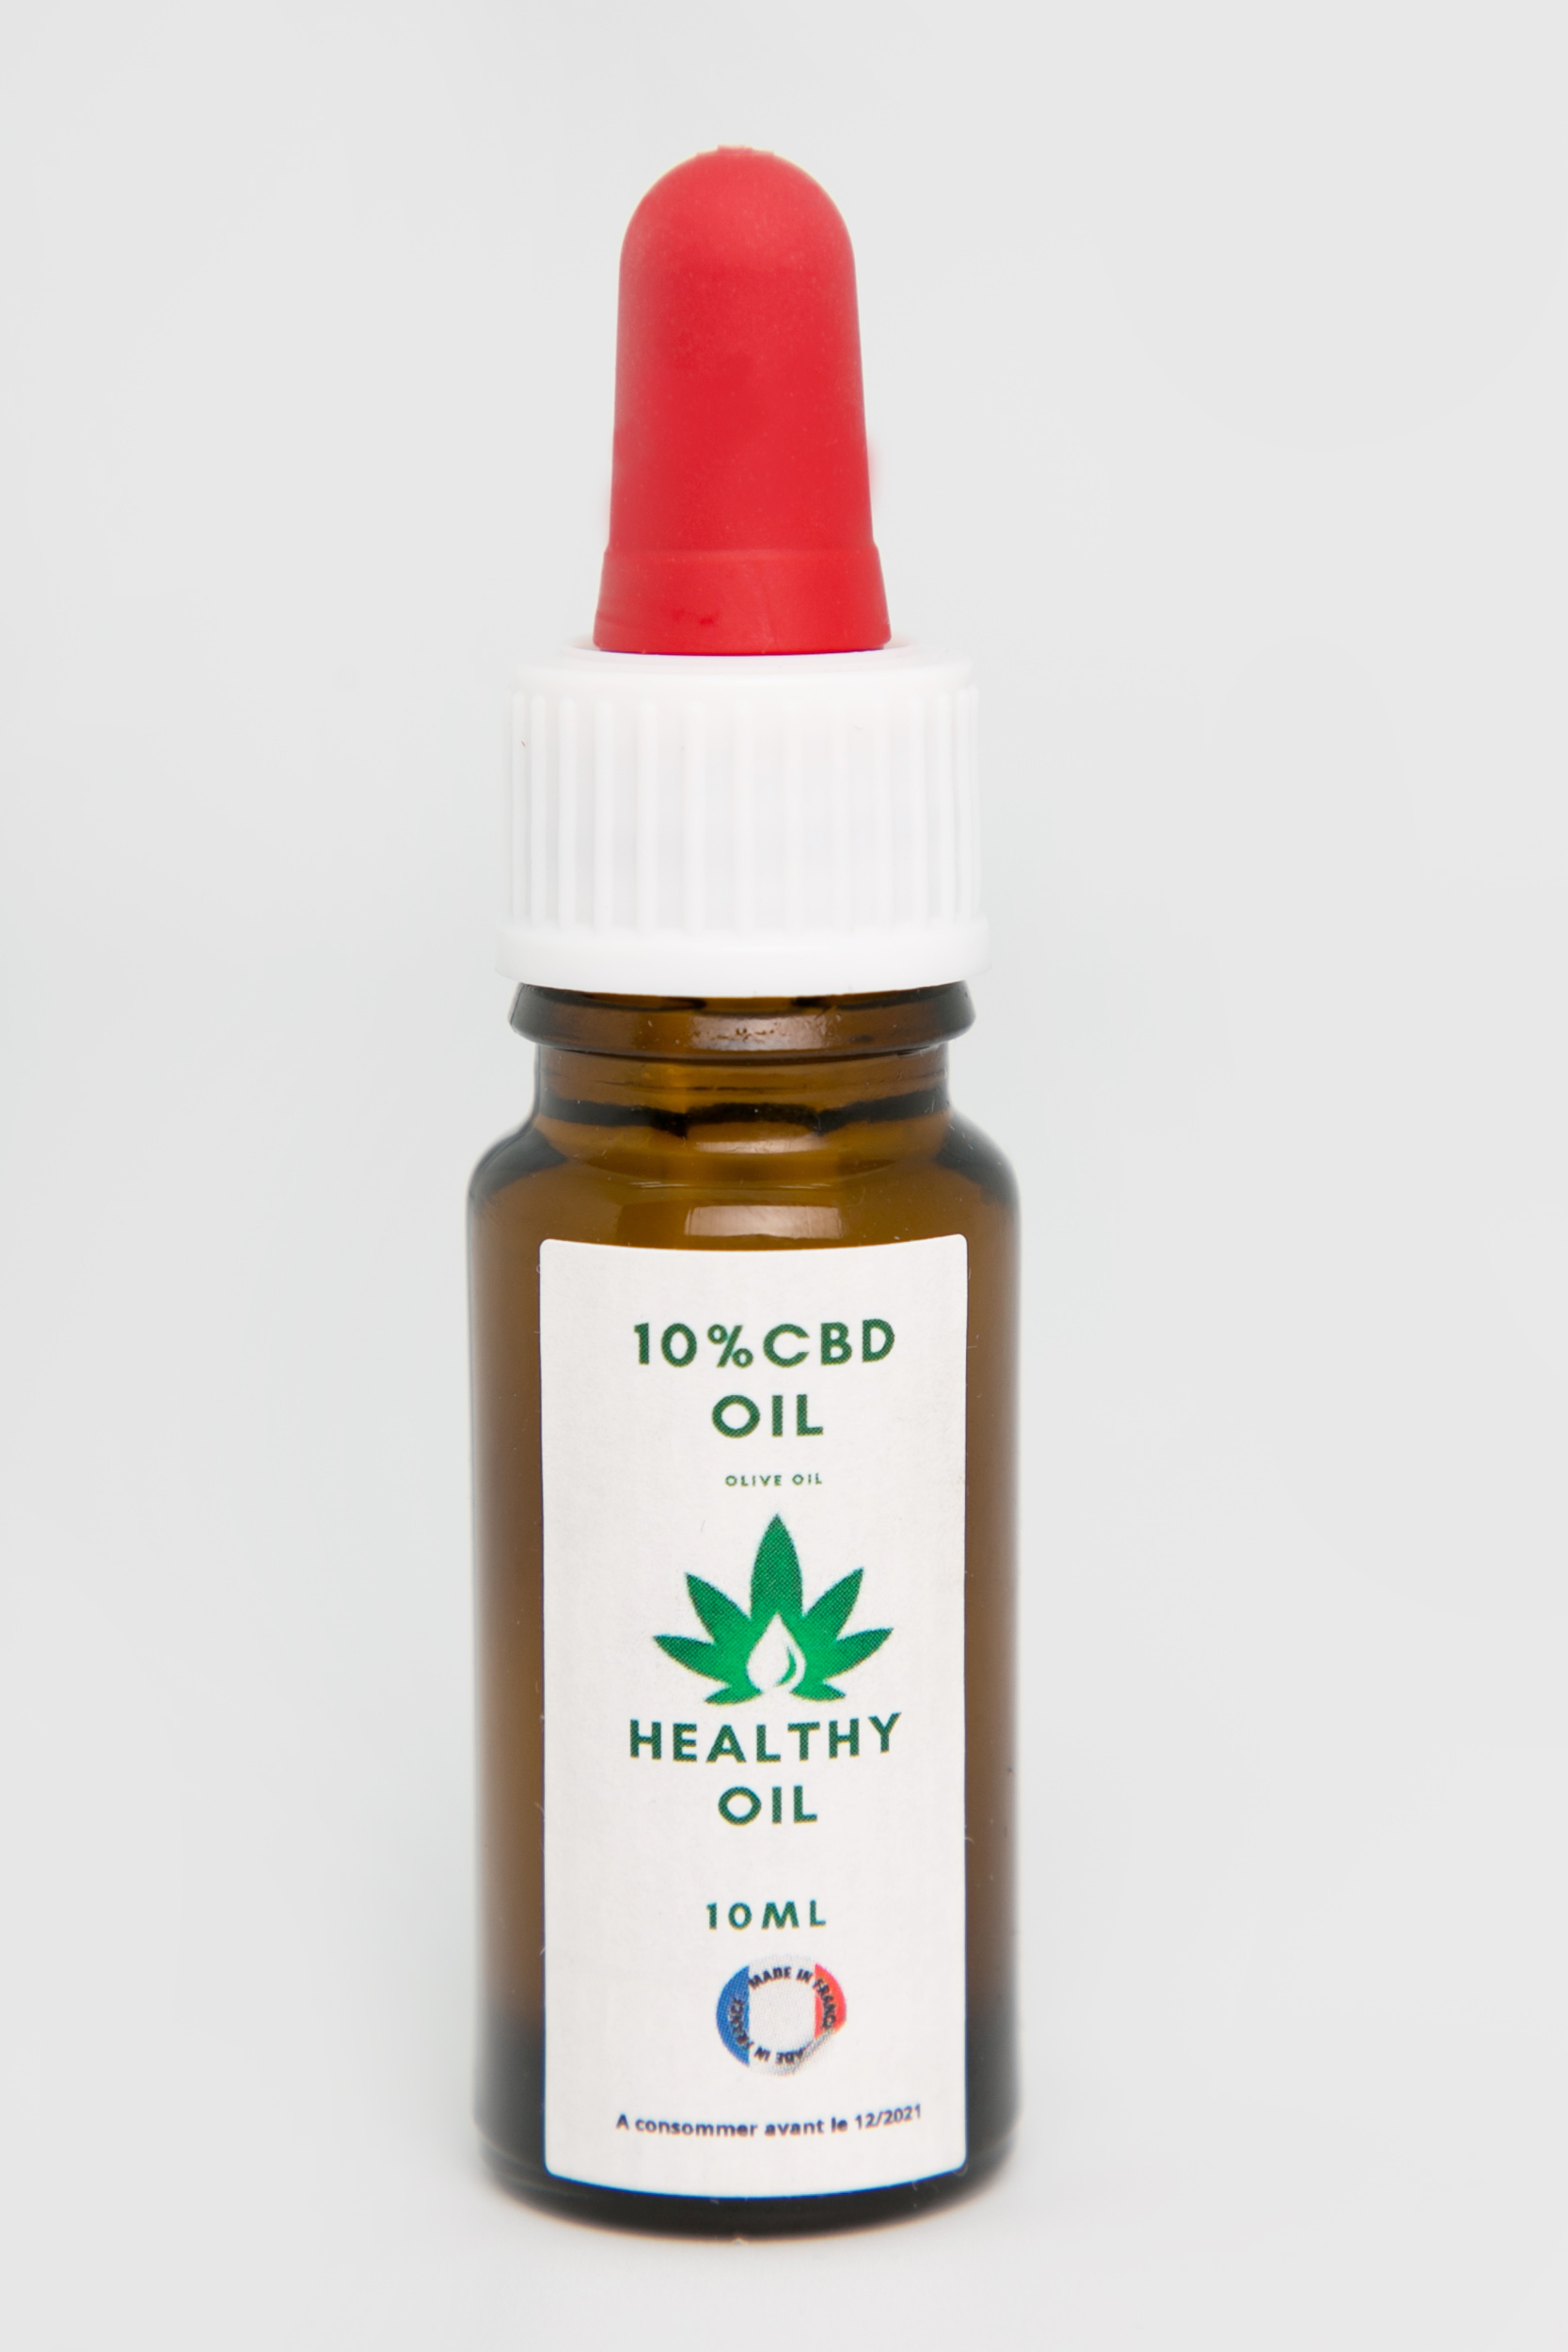 CBD OIL 10% Full Spectrum (10 Ml)